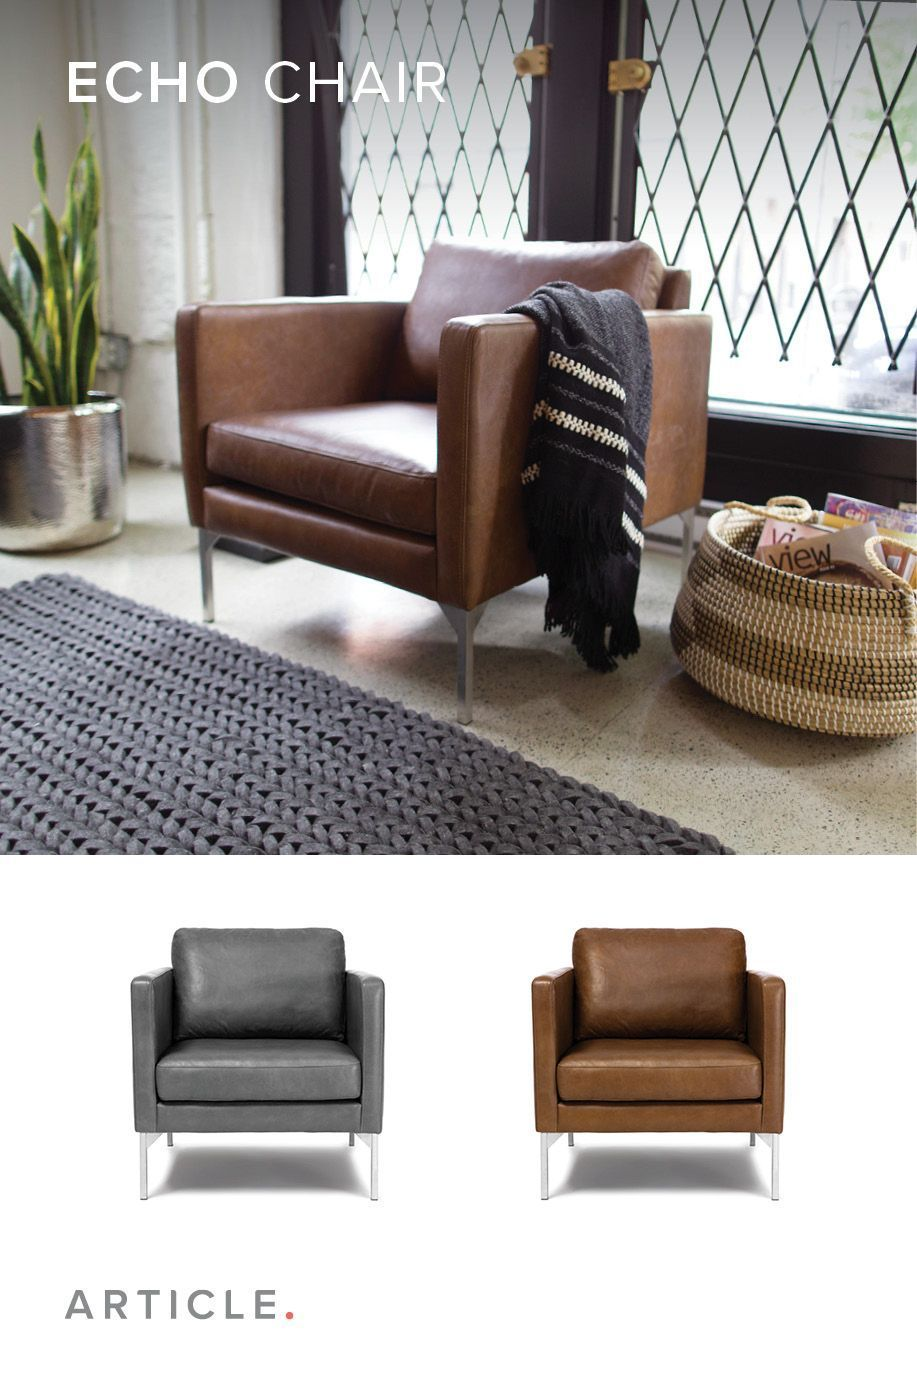 Like A Well Made Suit The Echo Chair Features Clean Lines And Strong Sching Livingroomremodeling Livingroomremodelideas